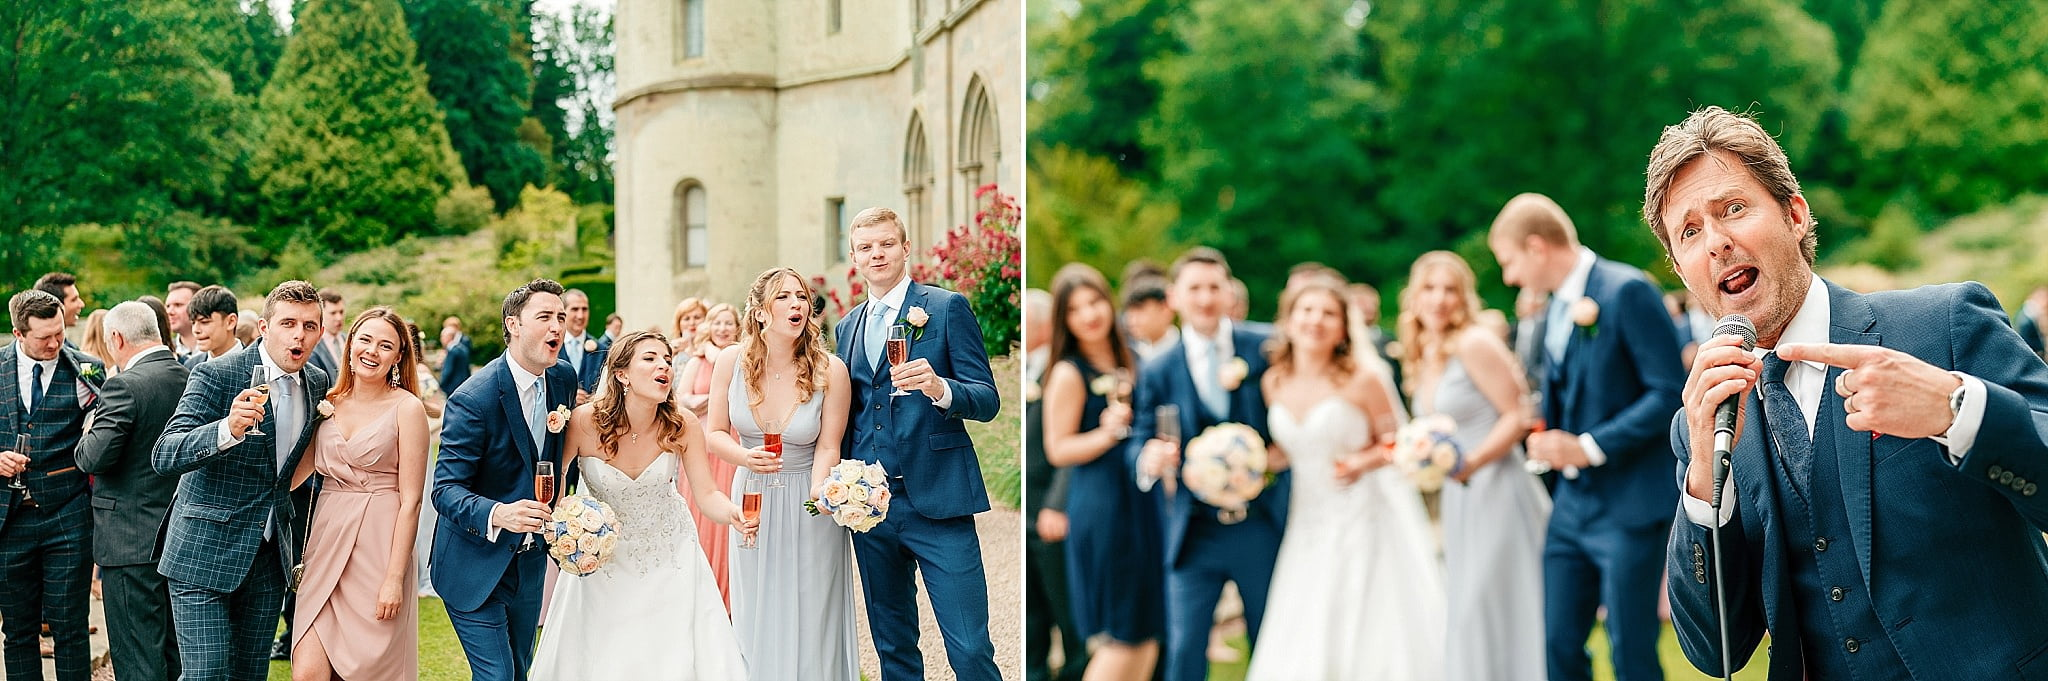 Eastnor Castle Wedding - Ilona + Shane 42